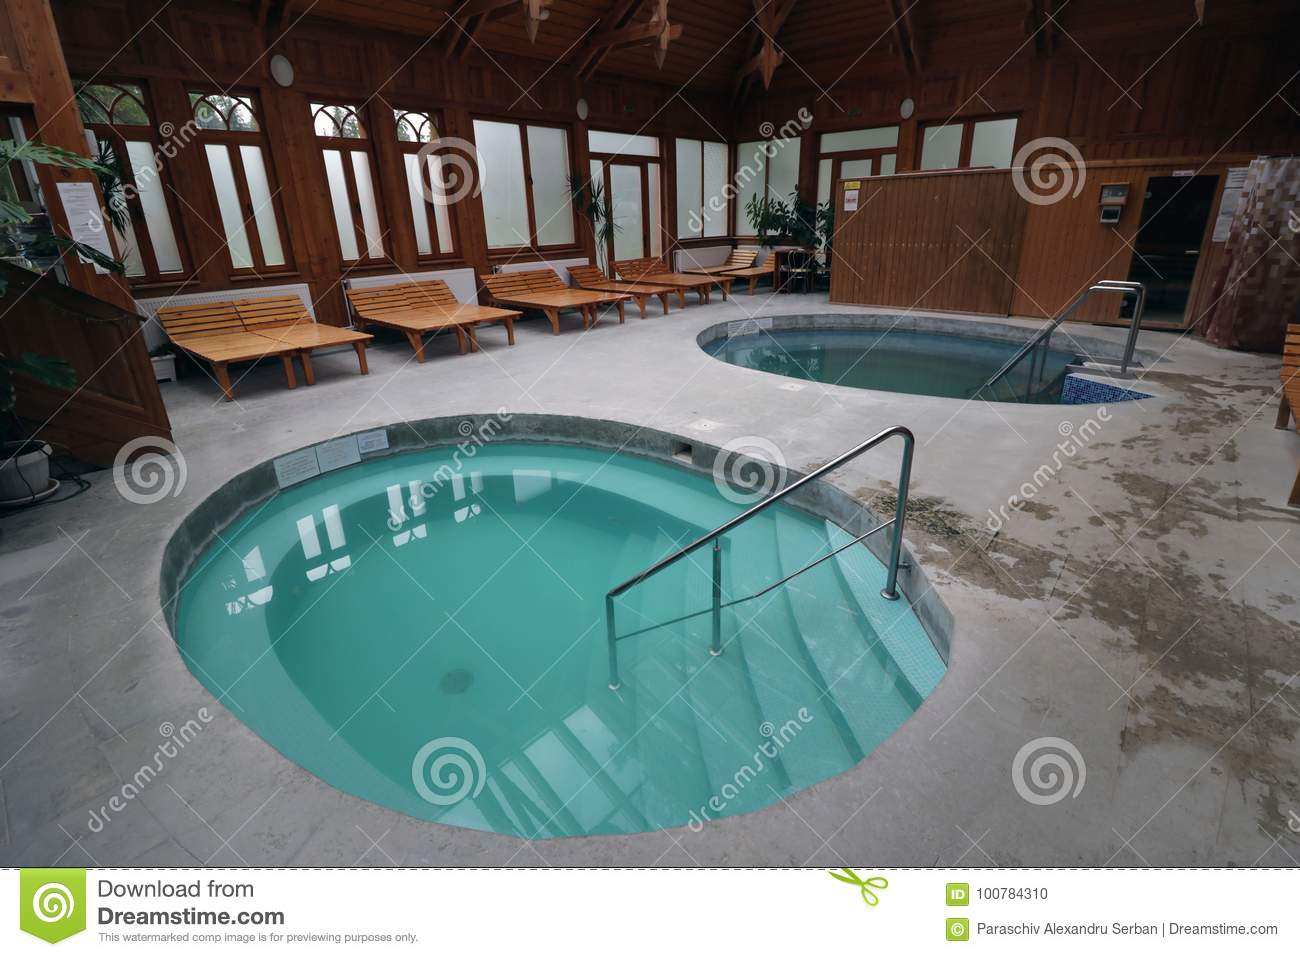 Outdoor Natural Gas Fire Pit Table, Luxury Spa Interior With Swimming Pools Blue Water Wooden Walls And Lounge Chairs Stock Photo Image Of Luxury Pools 100784310